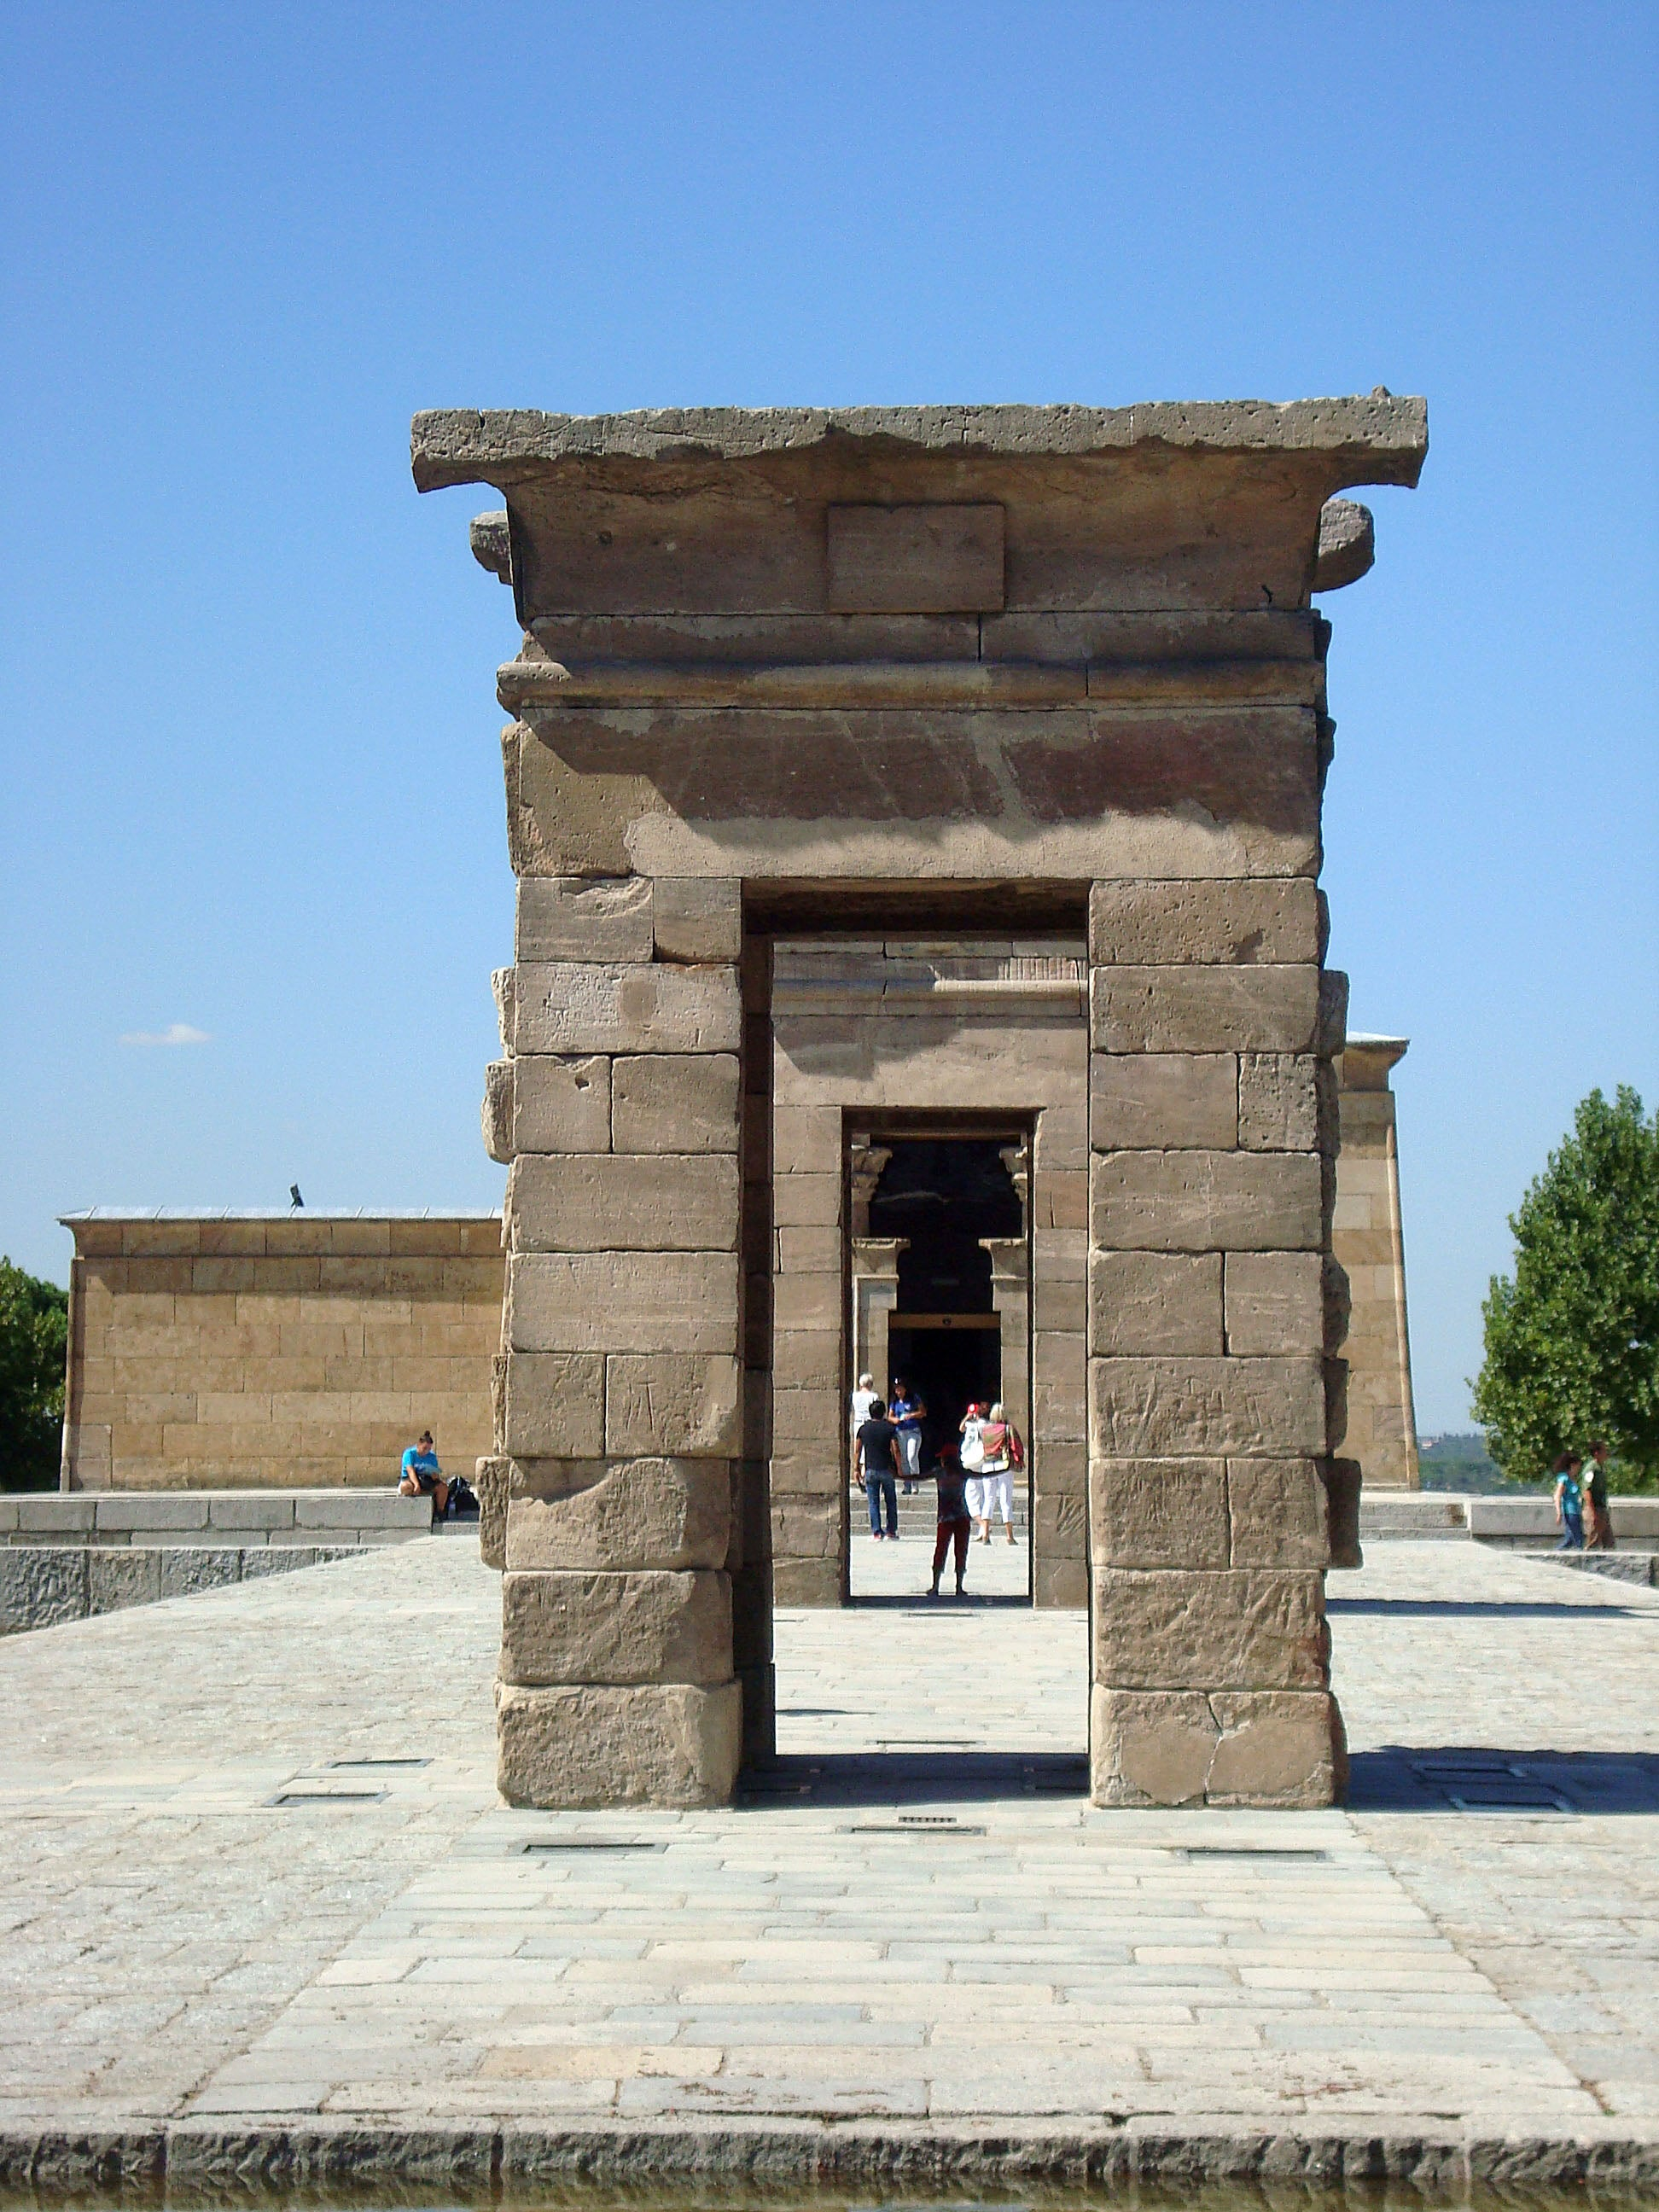 Monument in Temple of Debod